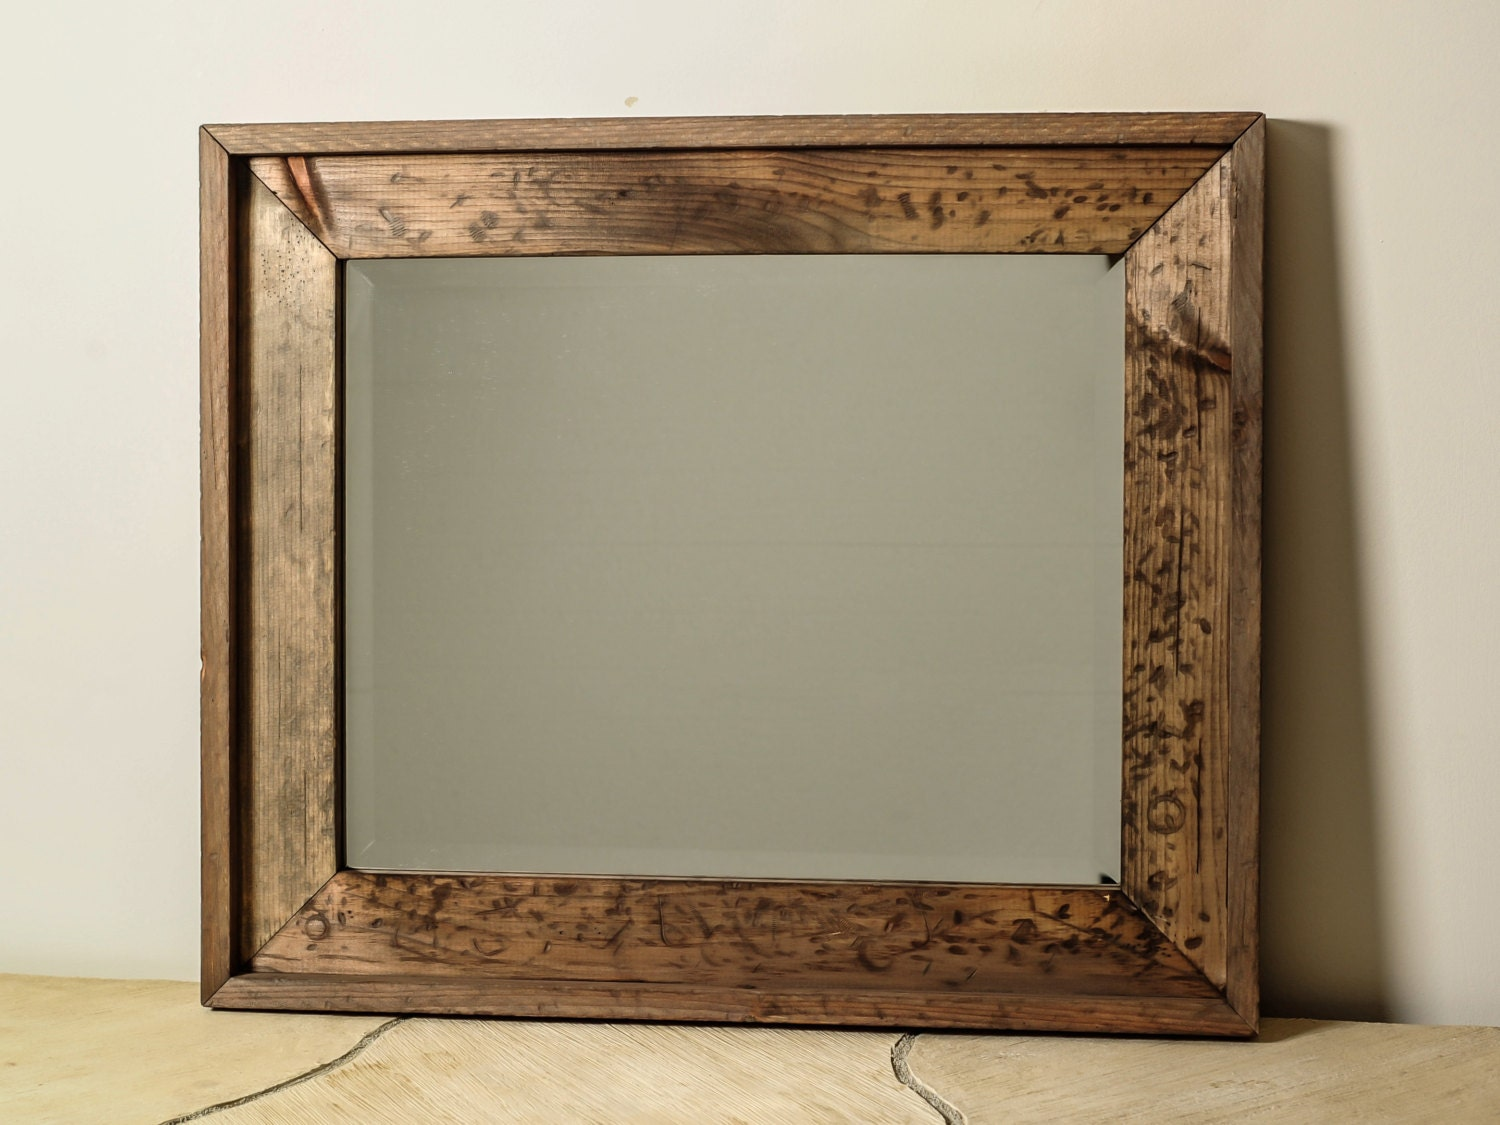 Large distressed wood mirror by englertandenglert on etsy for Large wall mirror wood frame